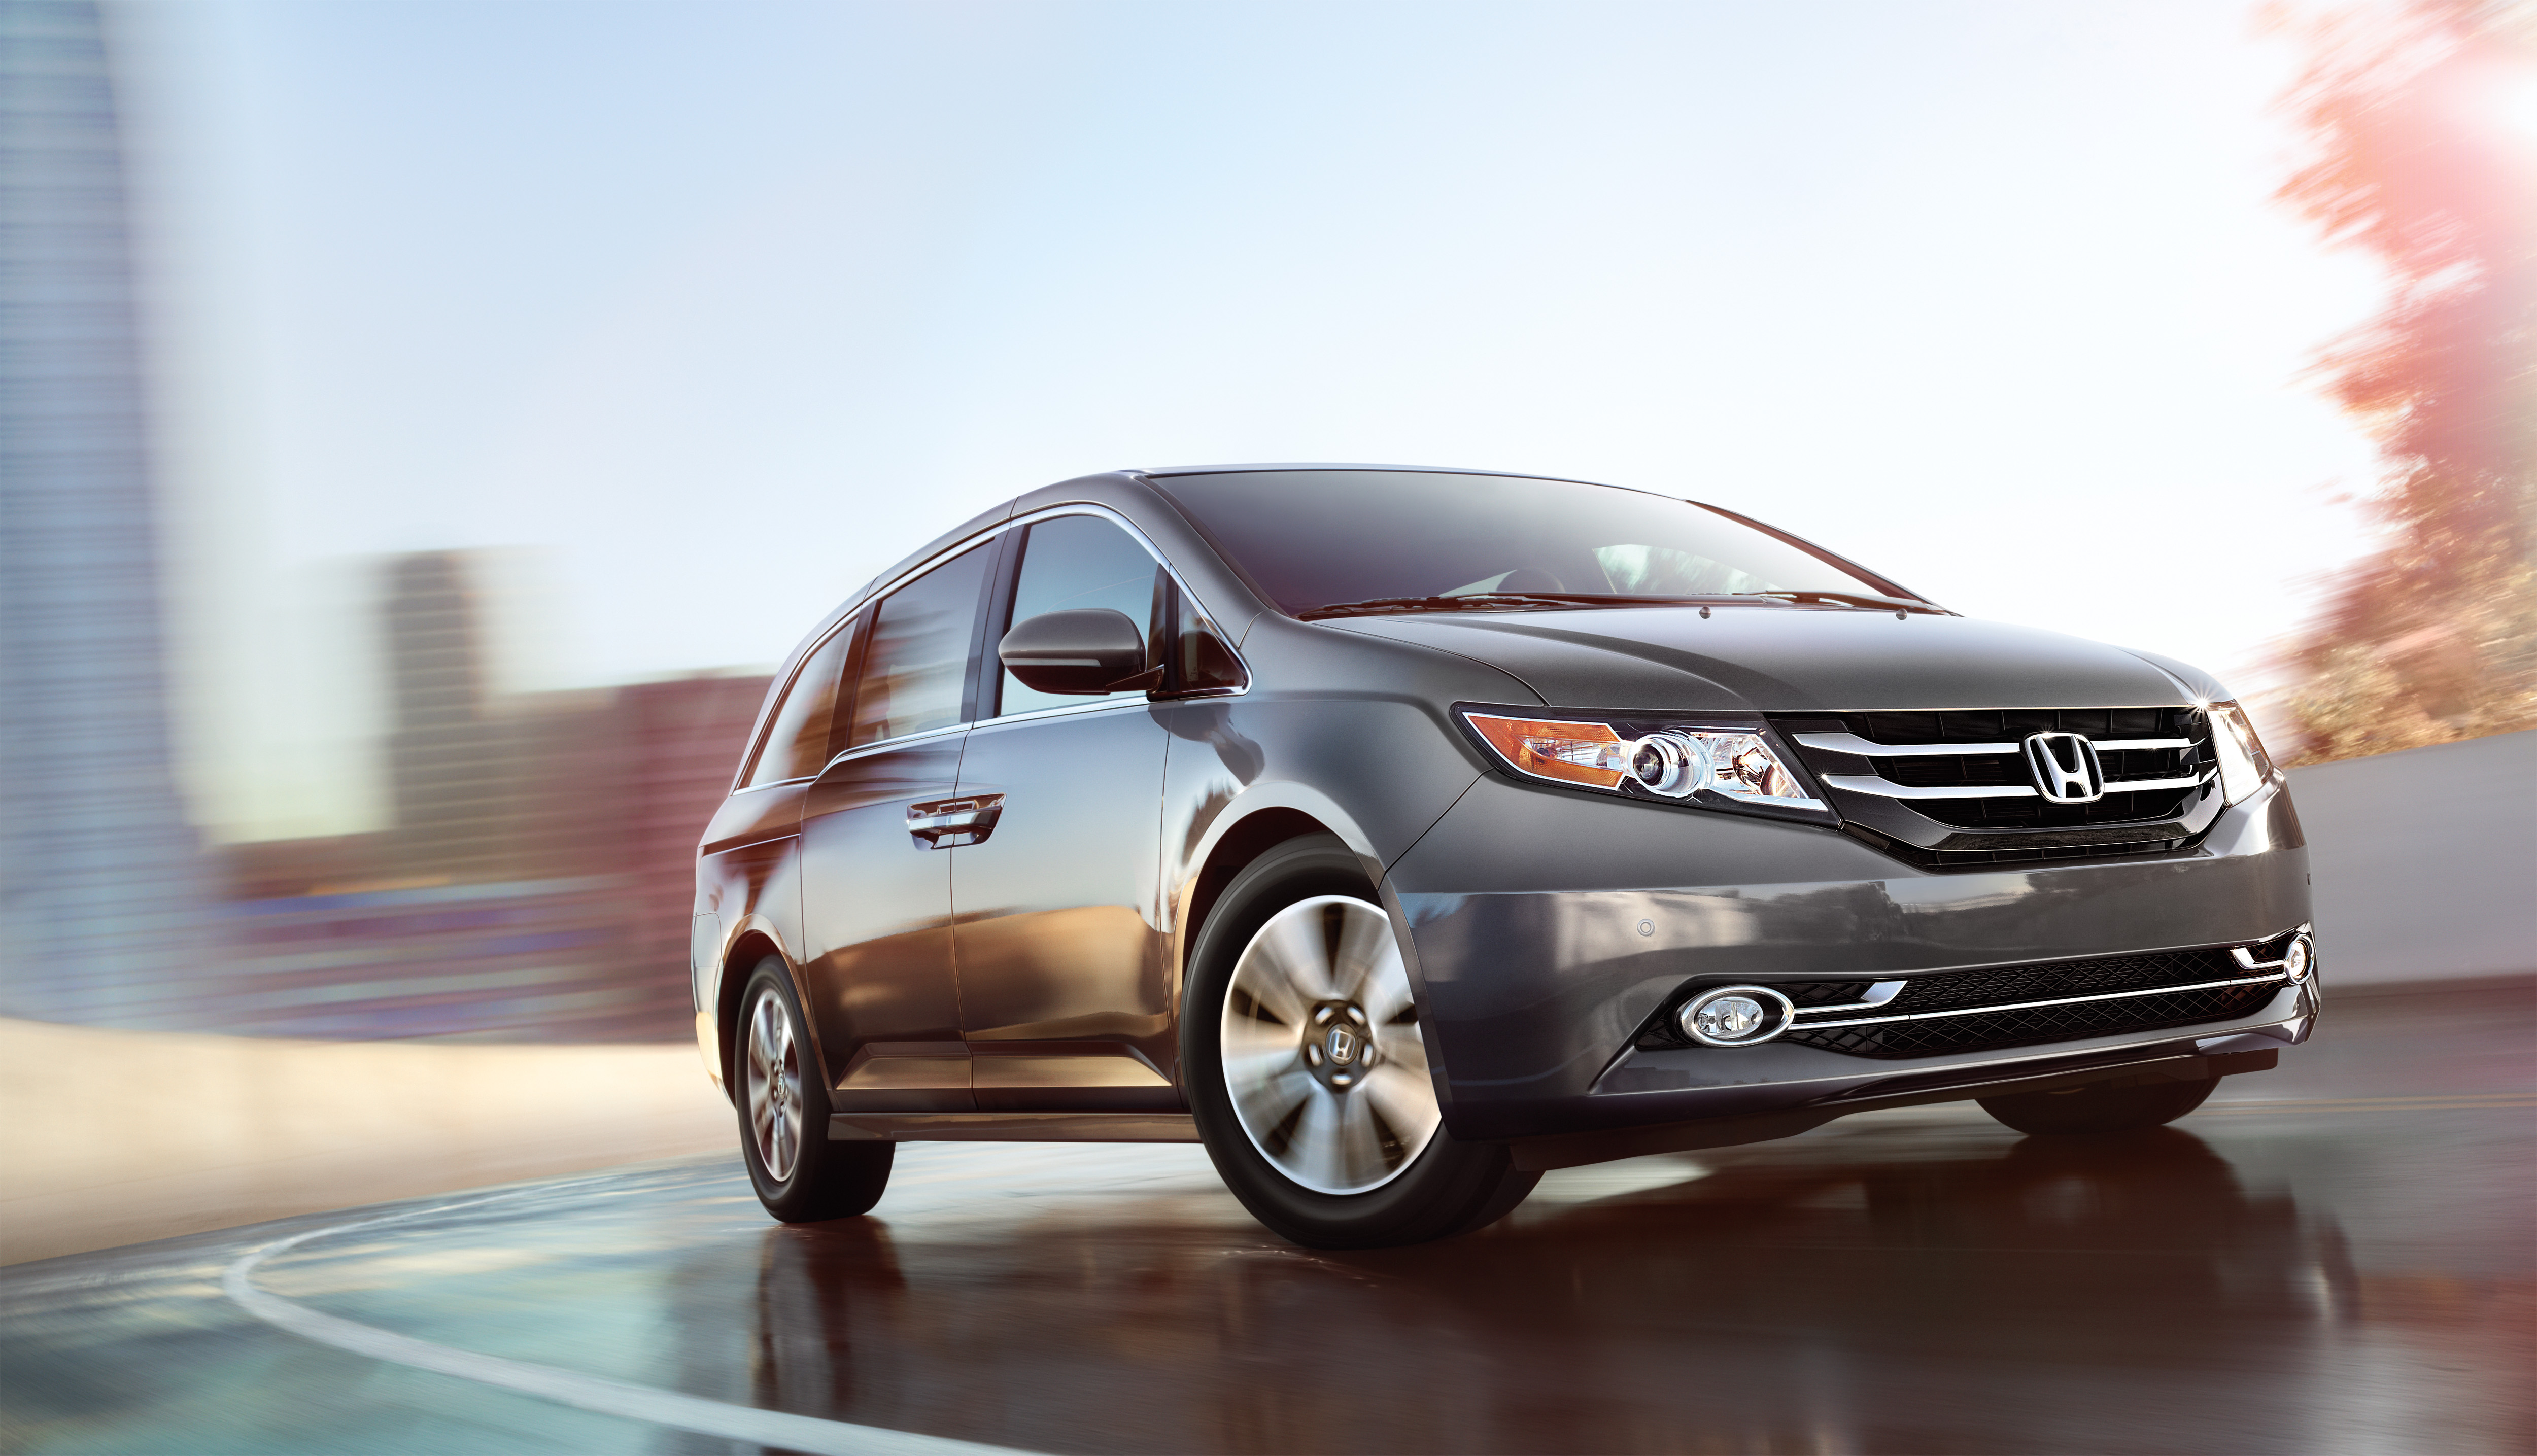 2014 honda odyssey review top speed. Black Bedroom Furniture Sets. Home Design Ideas